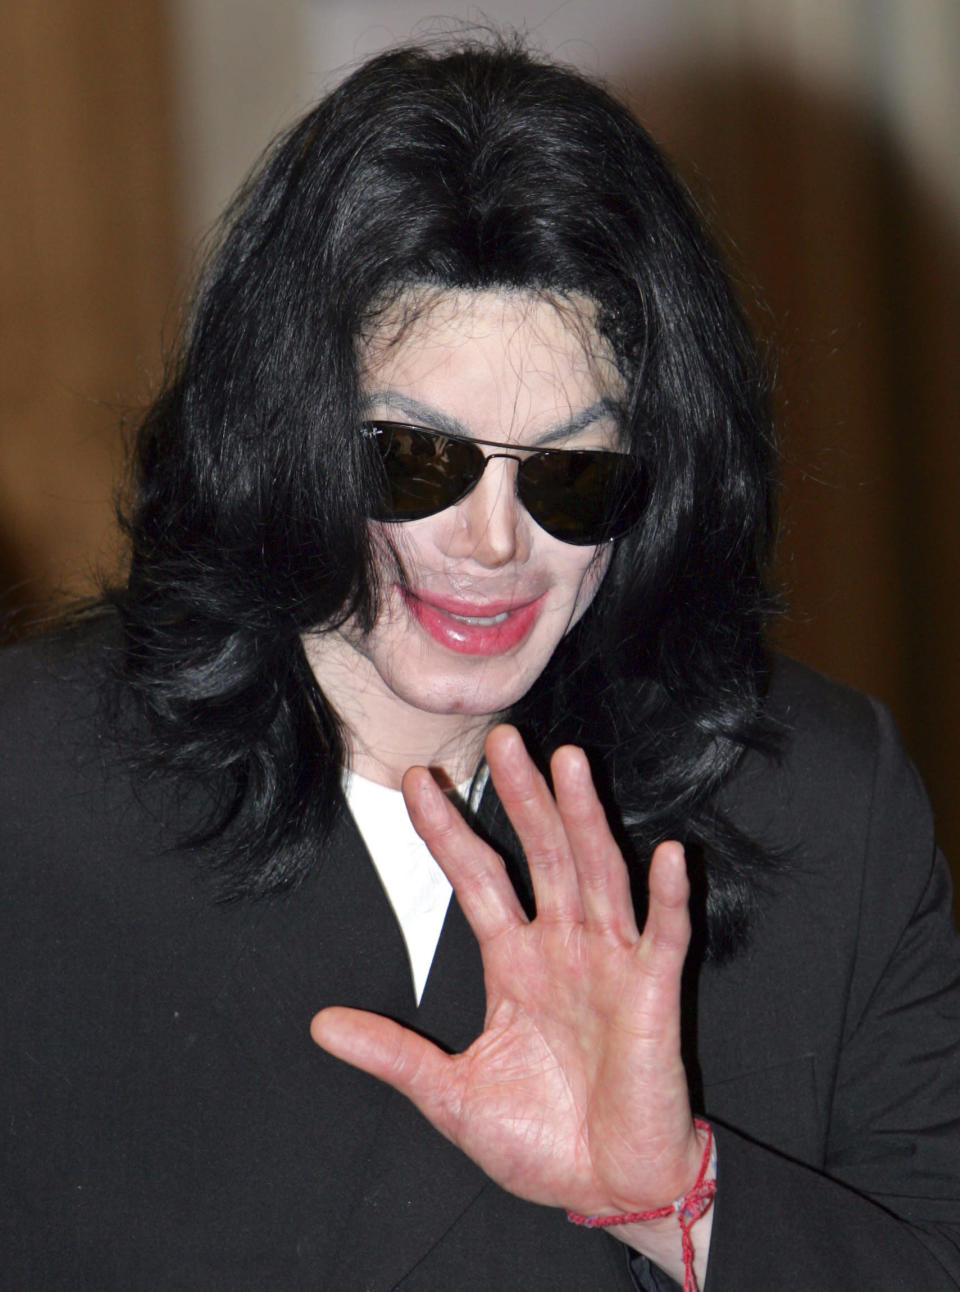 FILE - Michael Jackson waves in Tokyo in this Sunday, May 28, 2006, file photo. Jackson's Neverland Ranch has found a new owner in billionaire businessman Ron Burkle. Burkle's spokesman said in an email Thursday, Dec. 24, 2020, that Burkle bought the 2,700-acre property near Santa Barbara, California. (AP Photo/Shizuo Kambayashi, File)